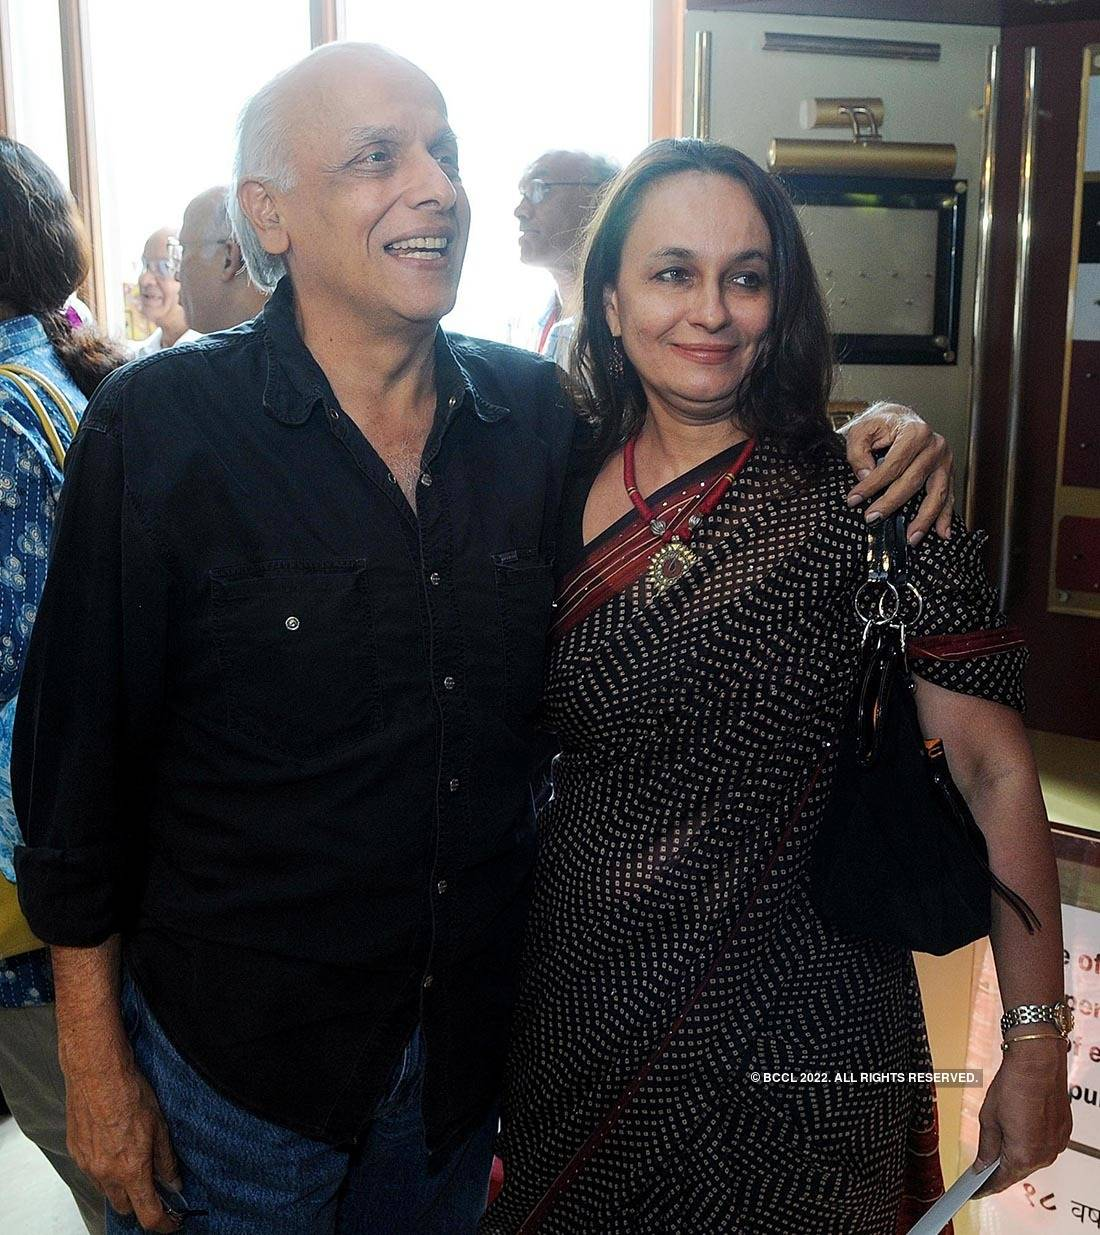 Rare and unseen pictures of noted Bollywood film director & producer Mahesh Bhatt